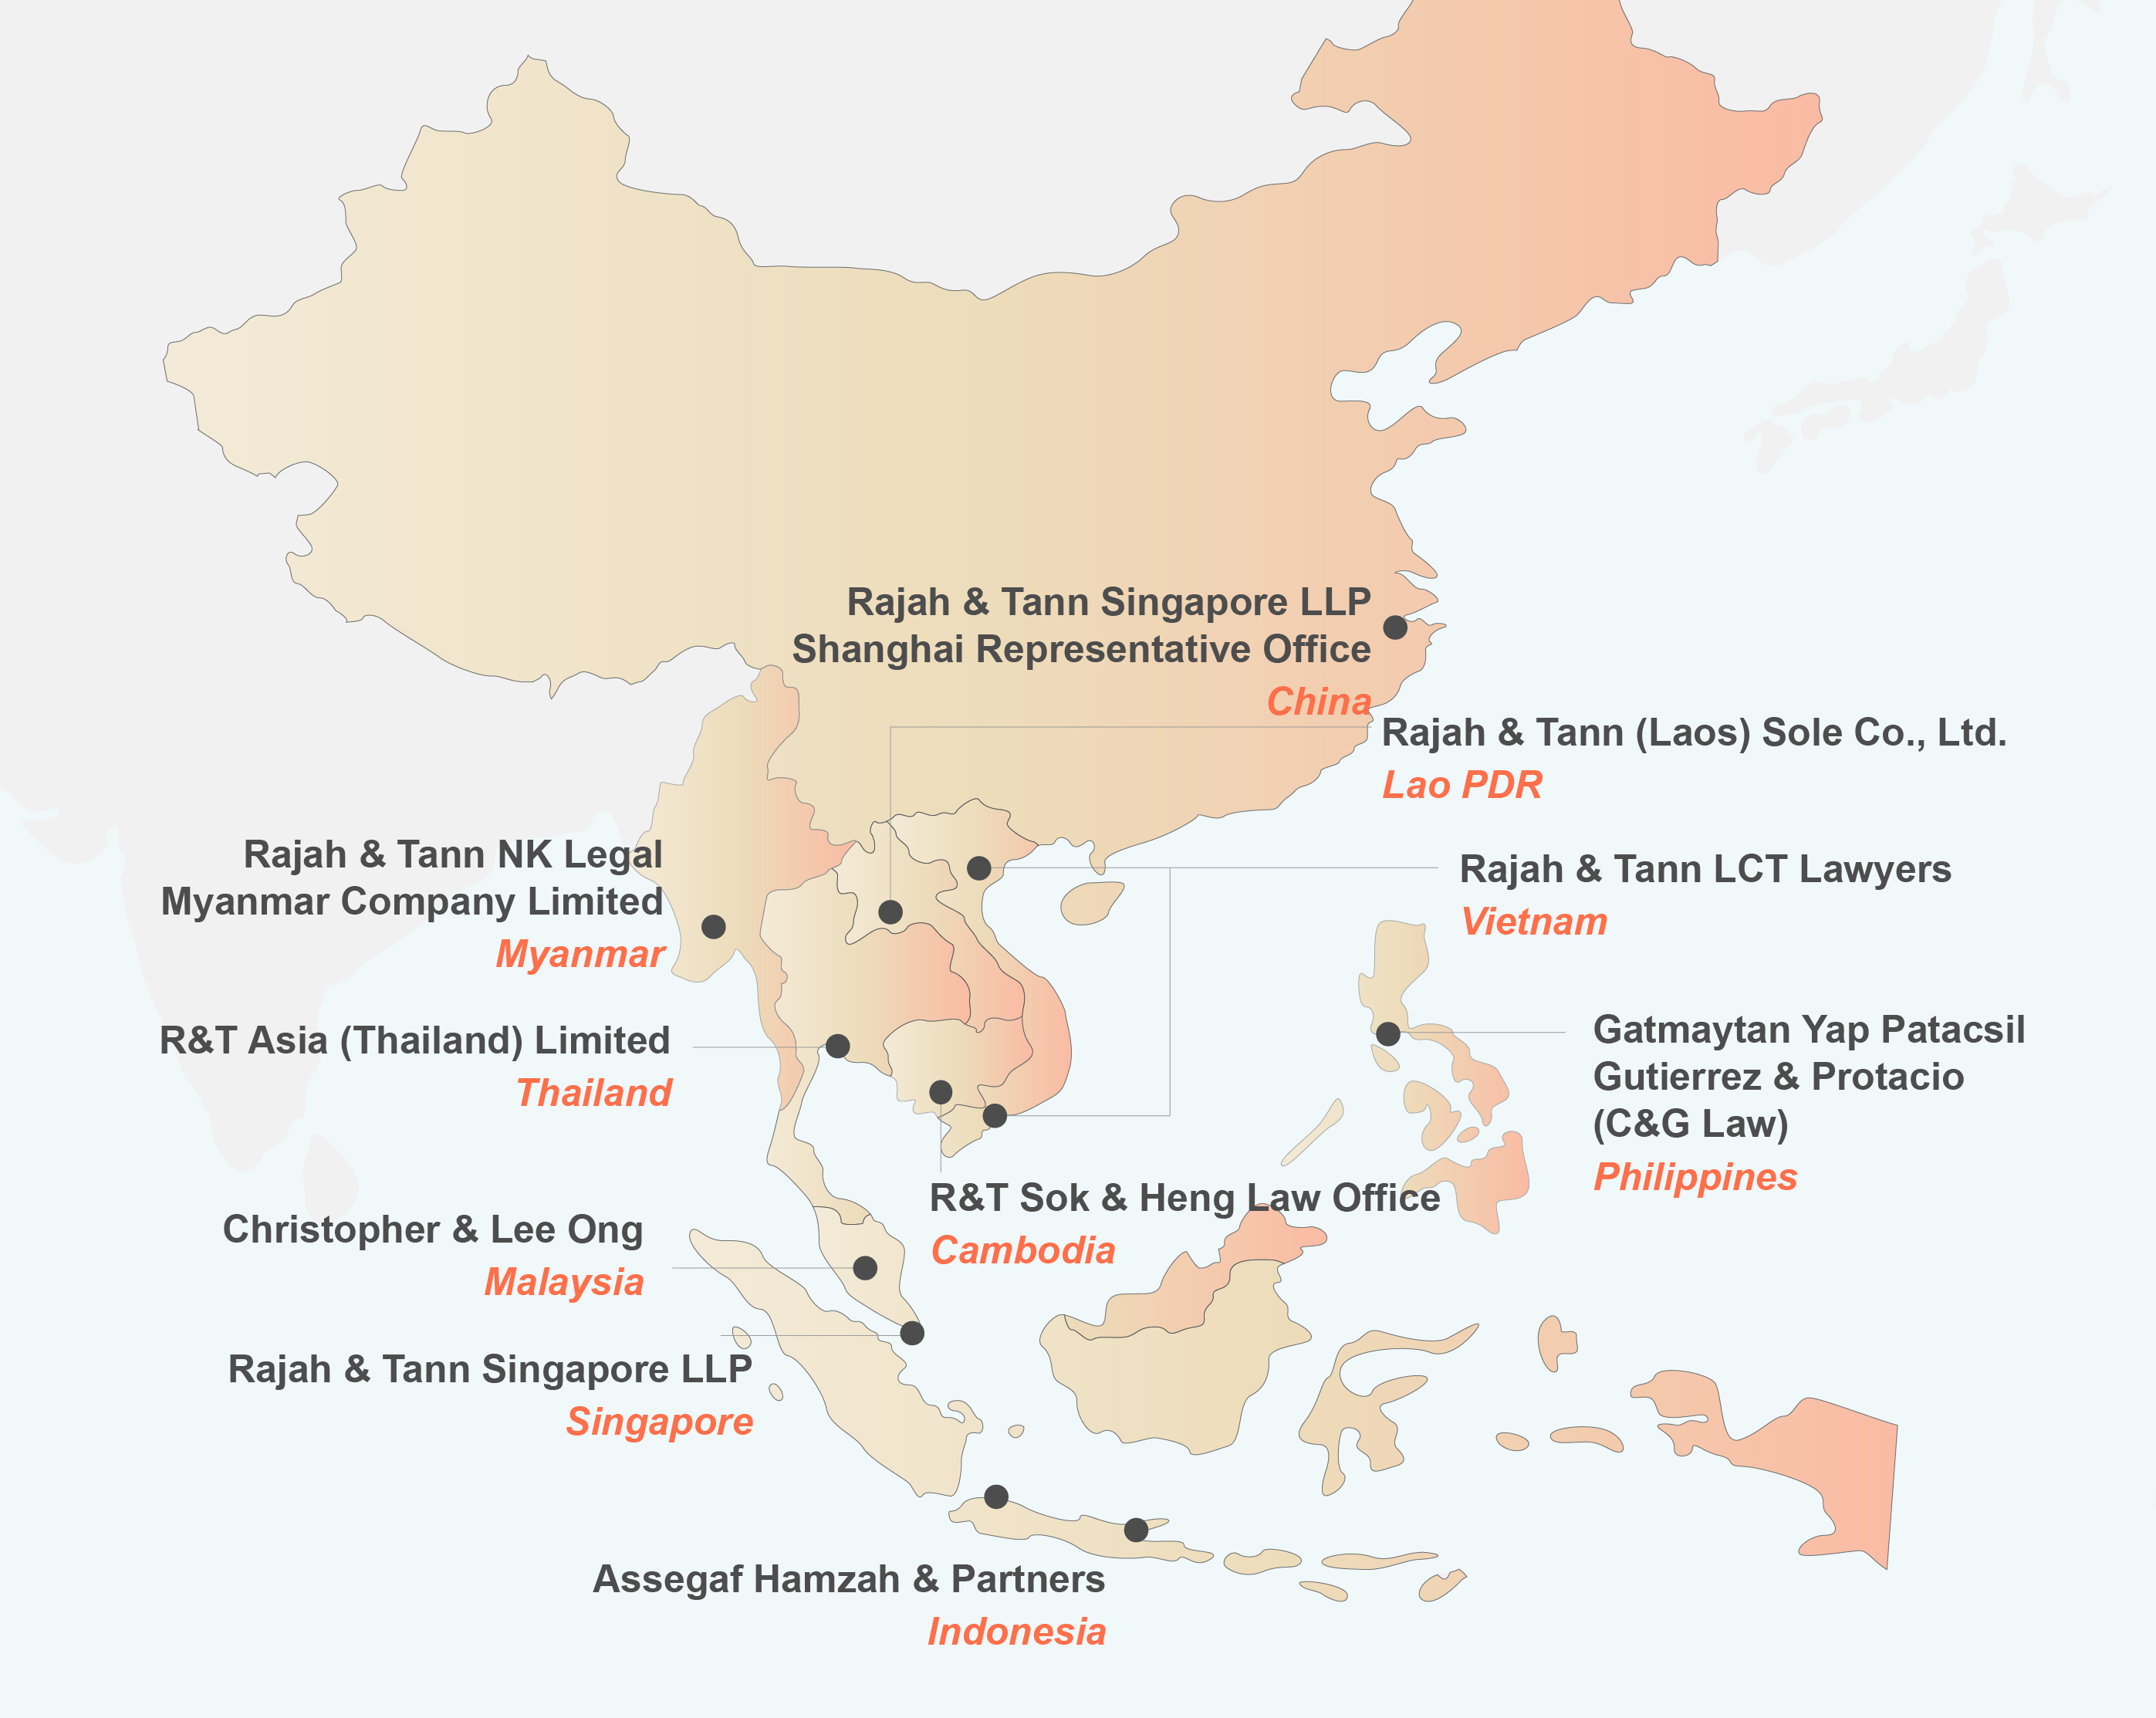 Map of R&T footprint across Asia